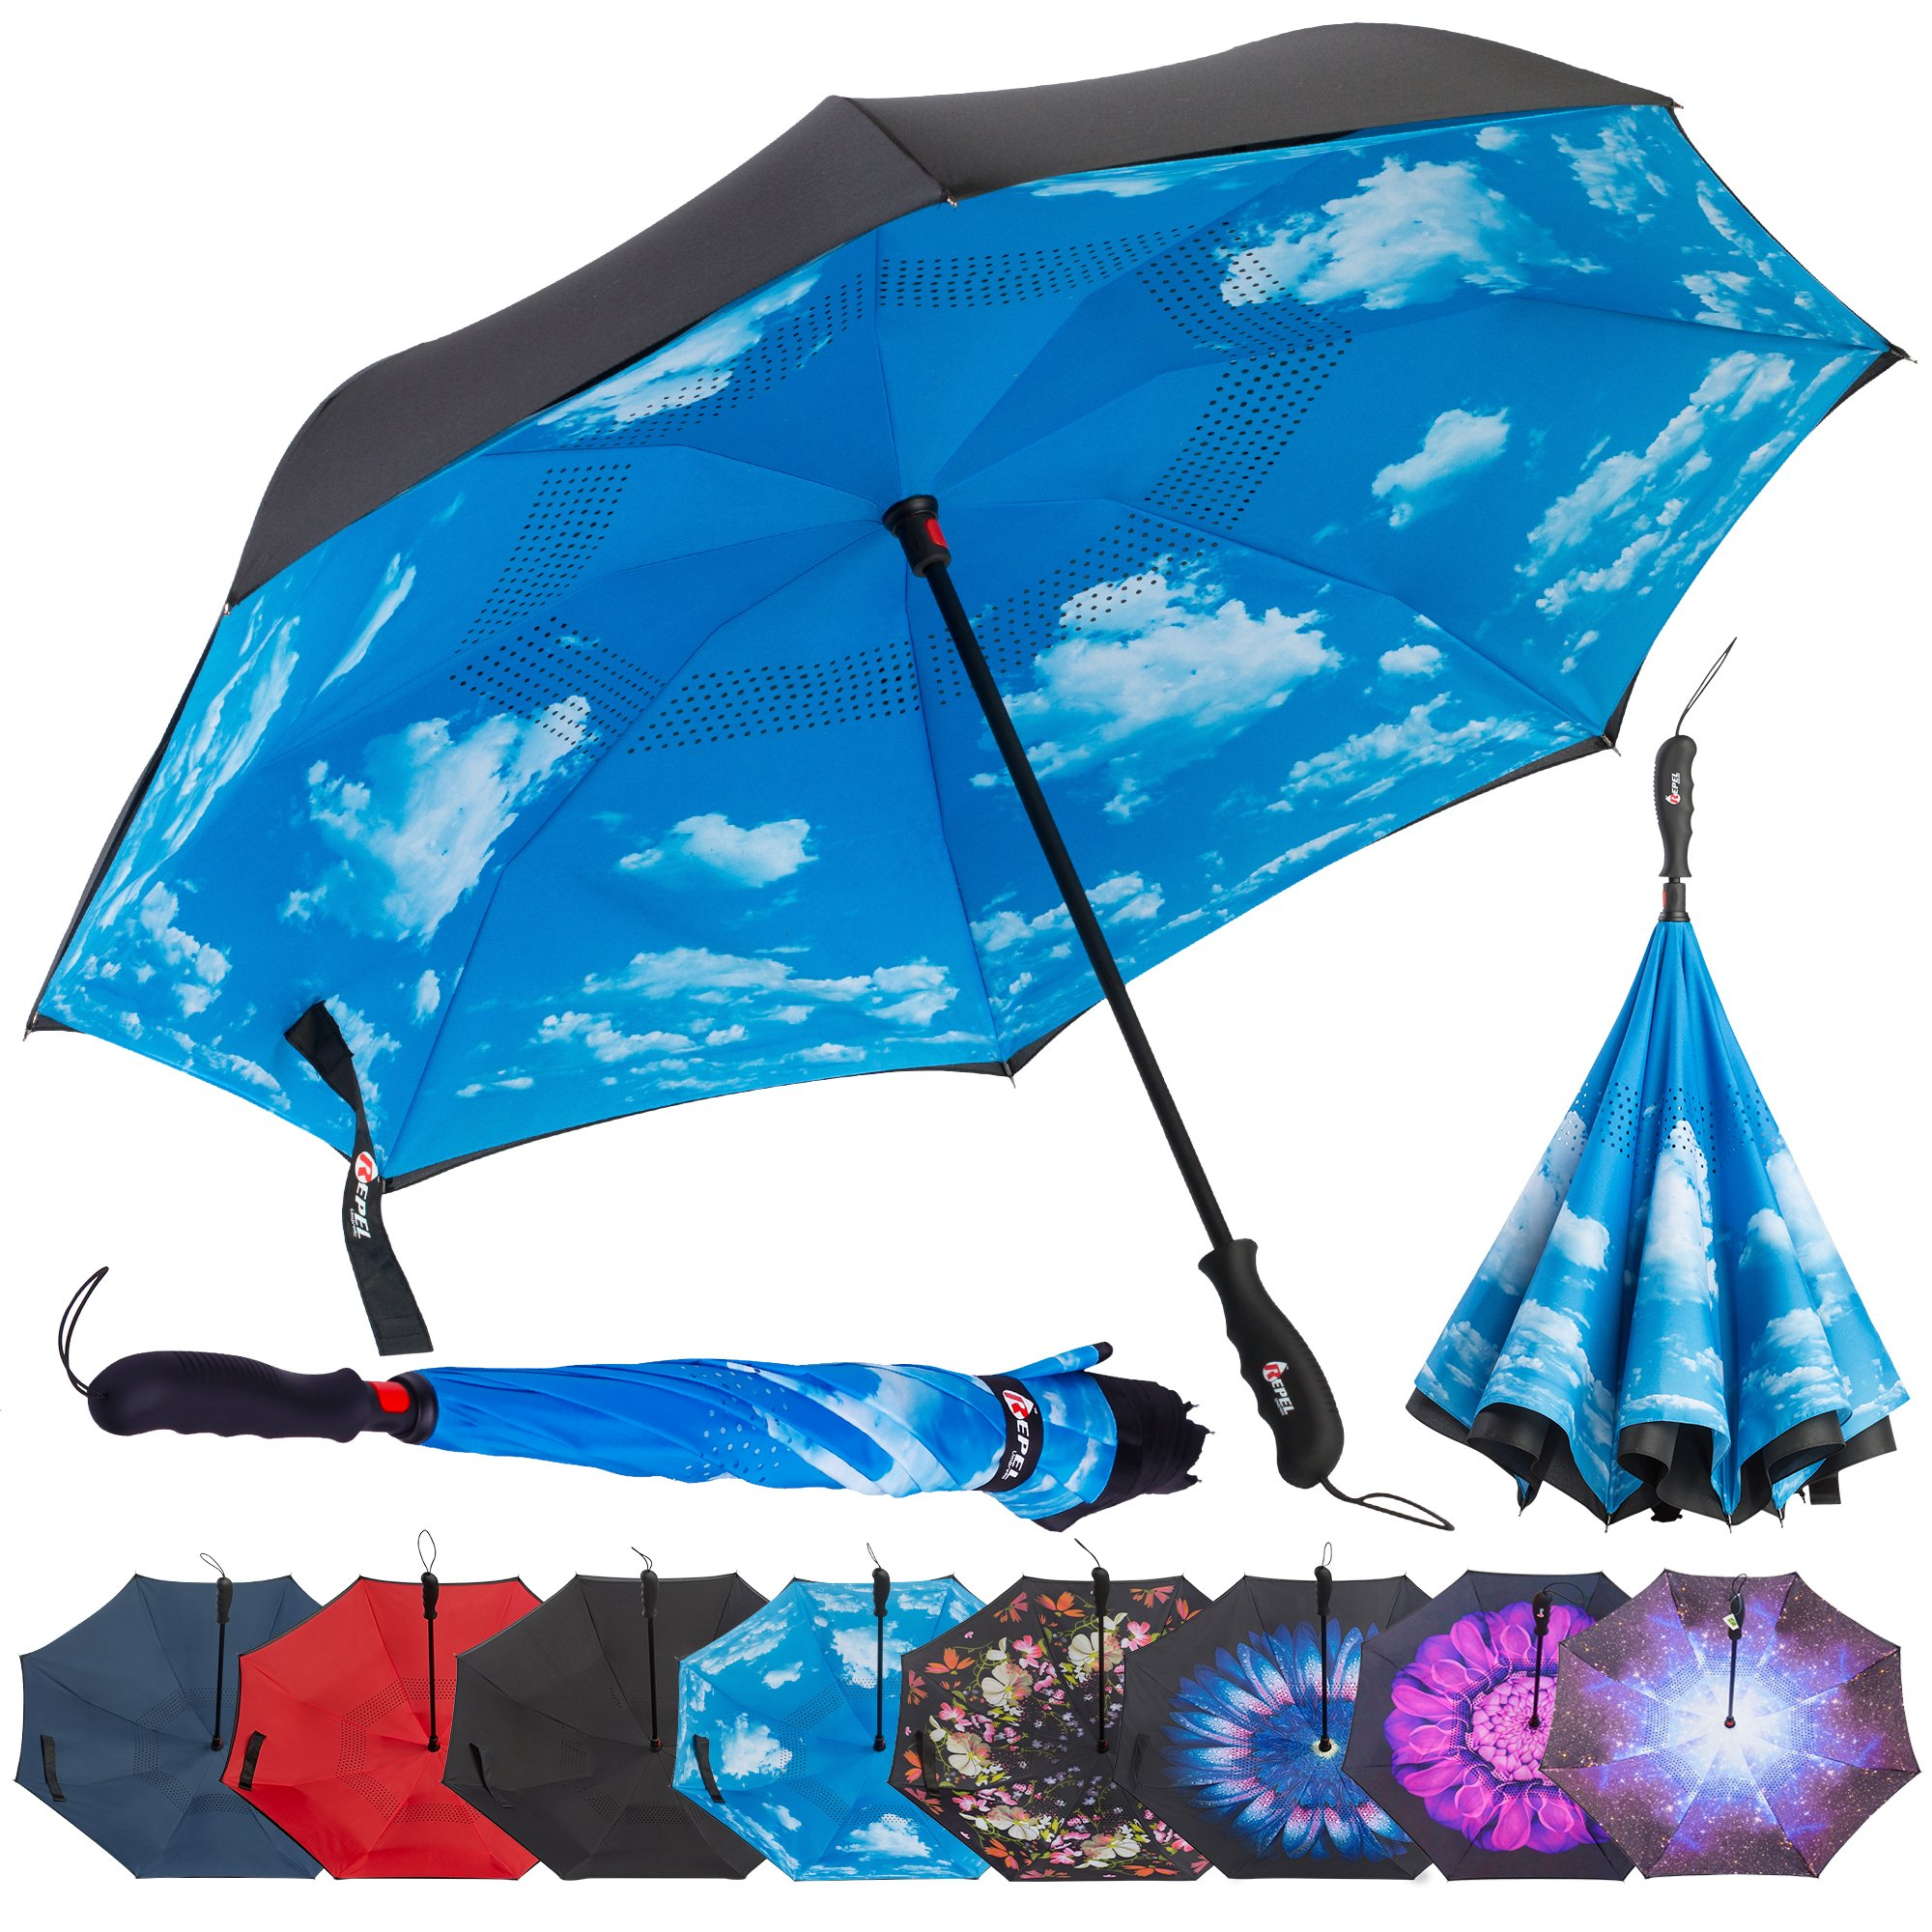 Repel Reverse Folding Inverted Umbrella with 2 Layered Teflon Canopy and Reinforced Fiberglass Ribs (Blue Sky) by Repel Umbrella